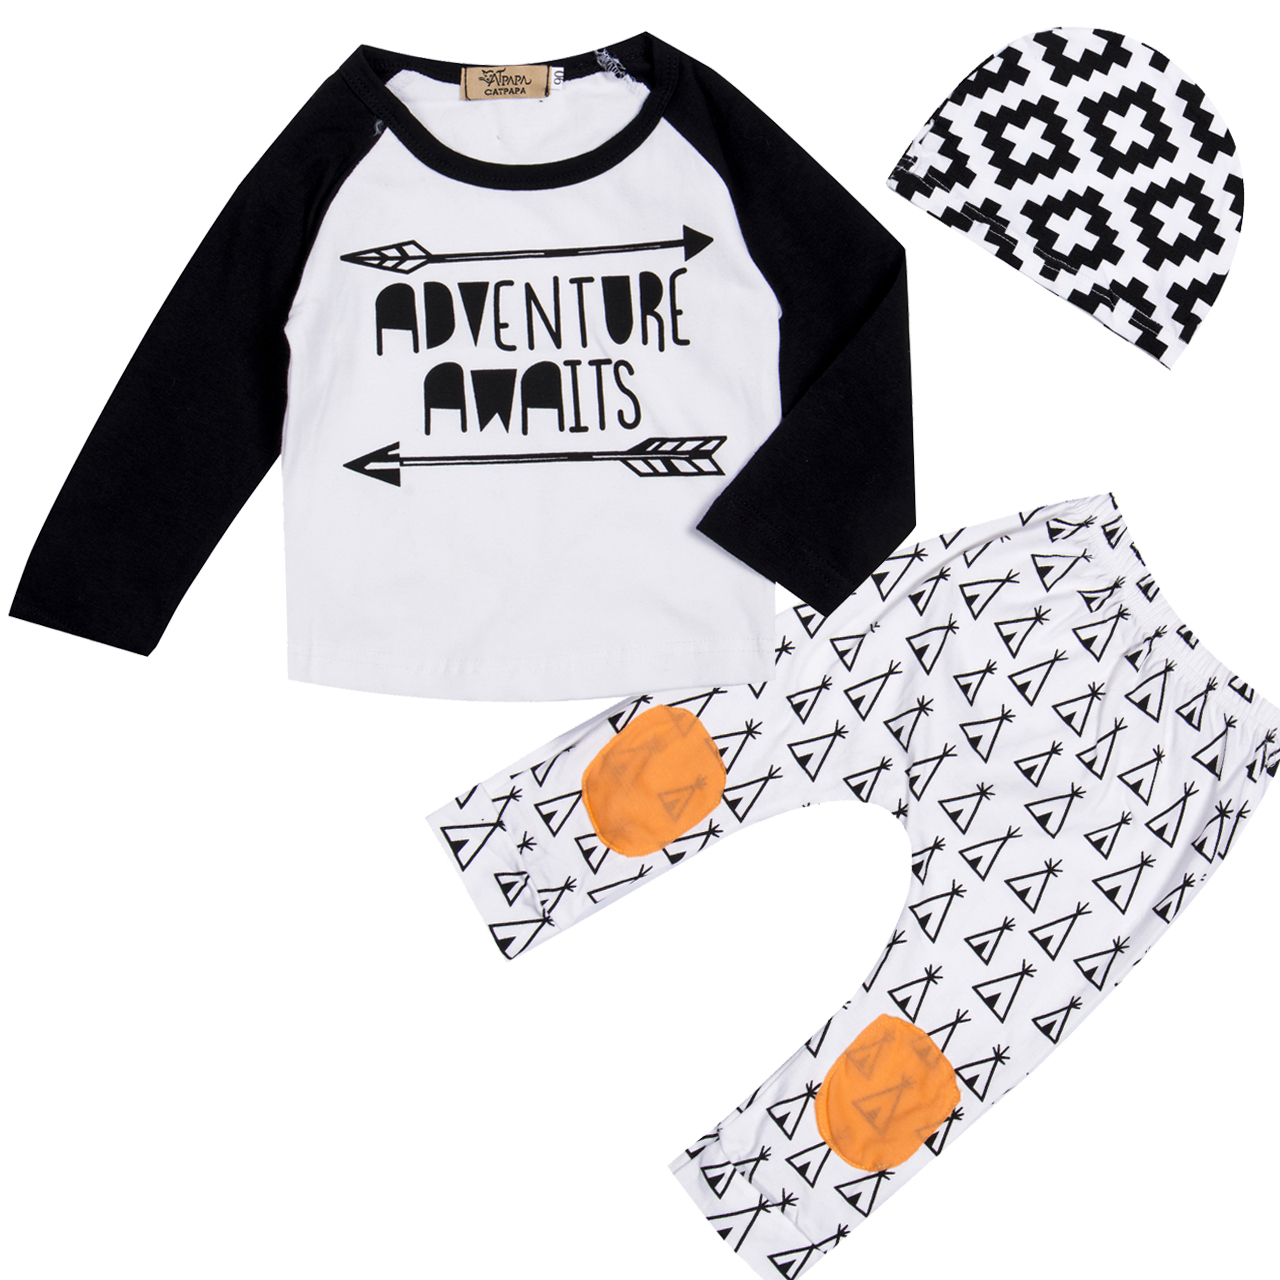 цена на 3 Pcs Newborn Kids Baby Girl Boy Letter Arrows Clothing Sets Infant Babies Long Sleeve Tops+Tents Pants+Hat Outfits Set Clothes